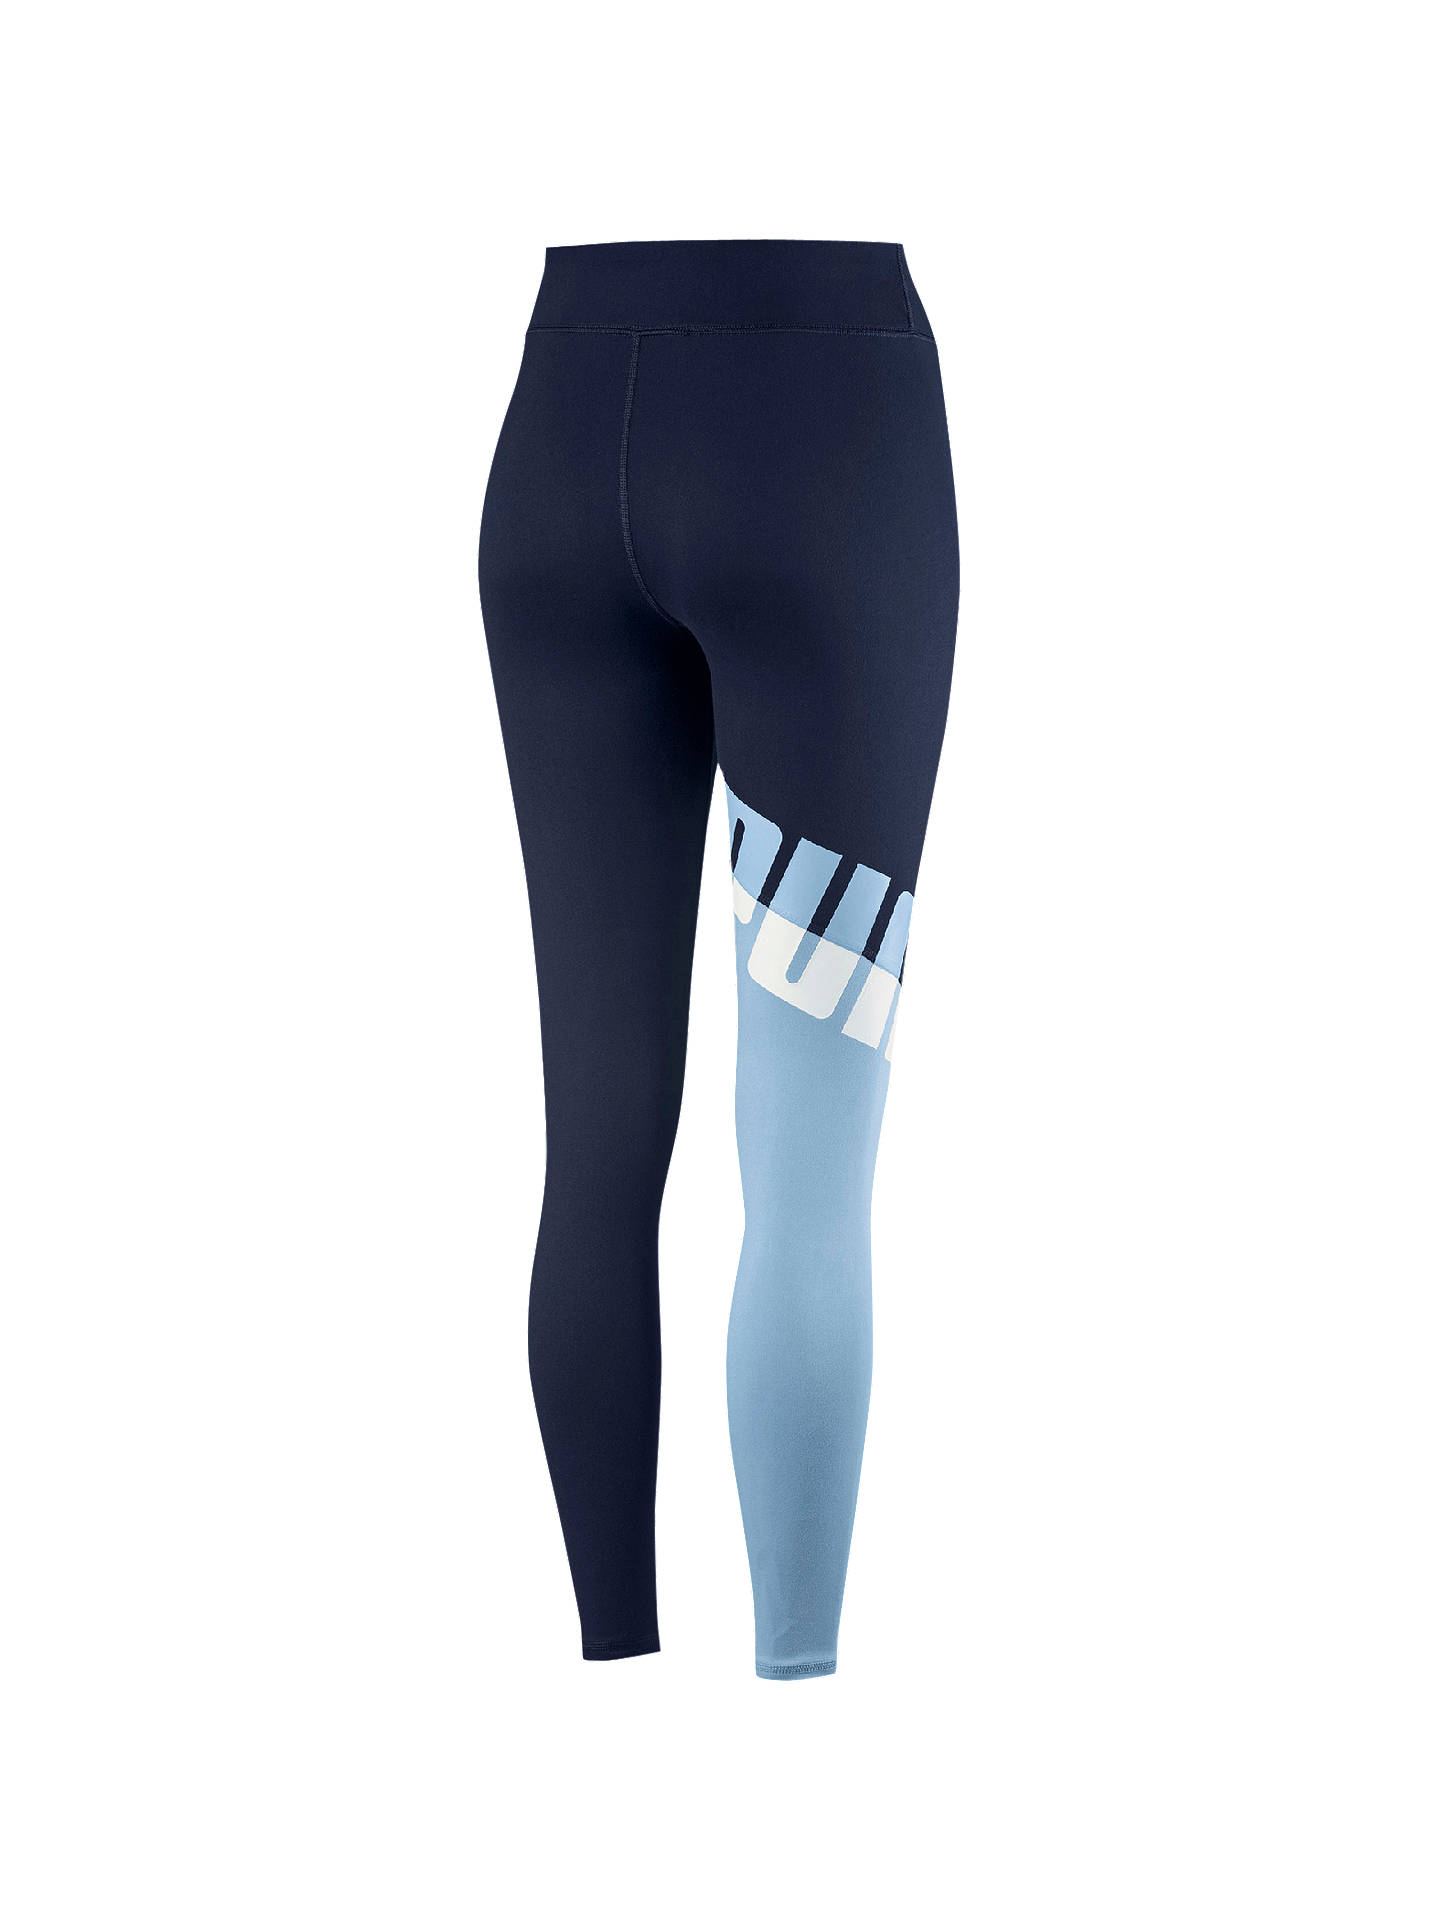 460af46690f8 ... Buy PUMA All Eyes On Me 7 8 Running Leggings